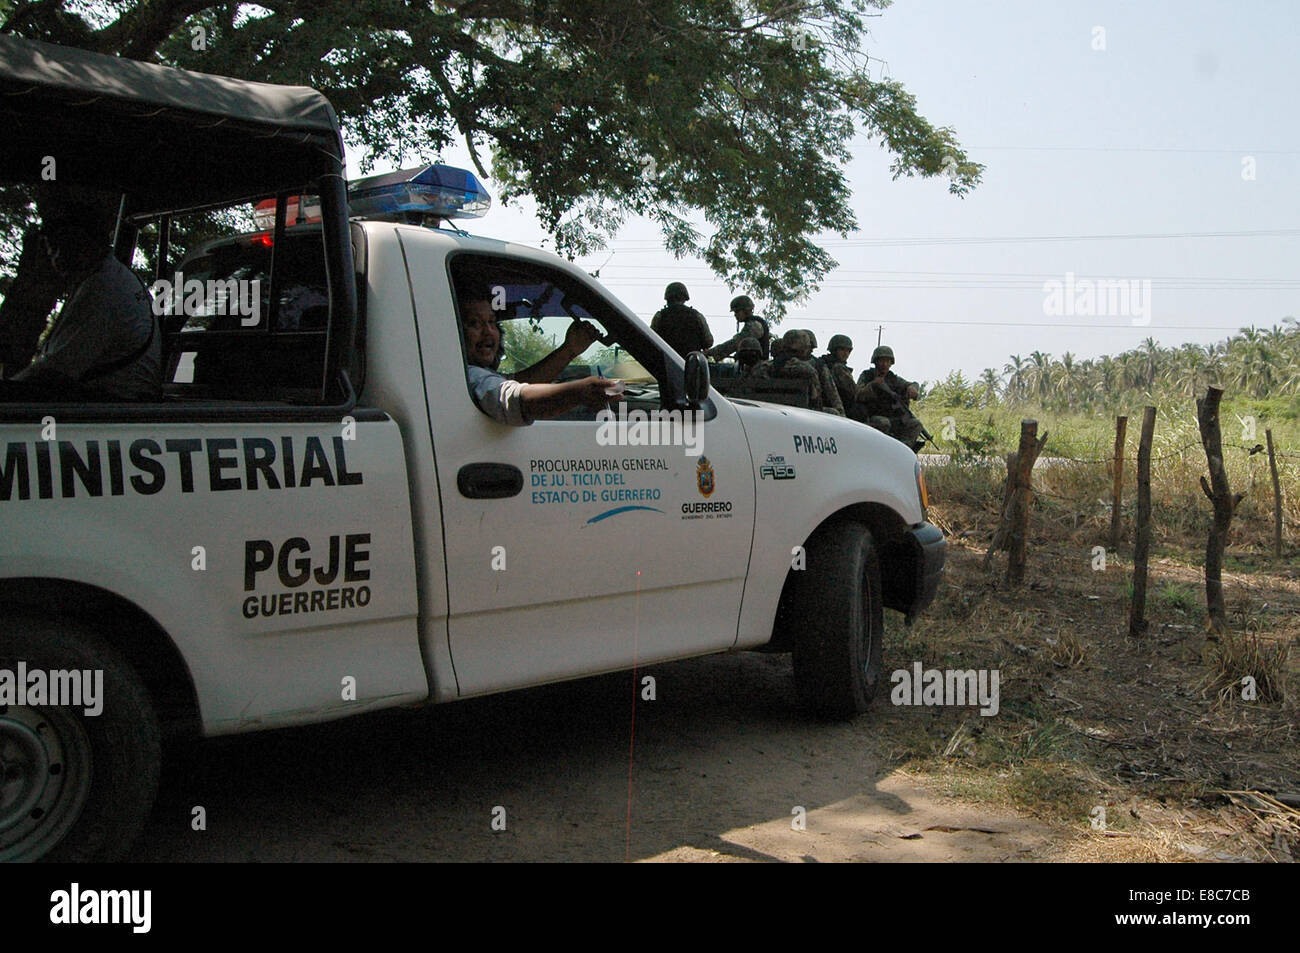 Guerrero, Mexico. 4th Oct, 2014. Security elements stand guard at the site where a grave of human remains was found - Stock Image